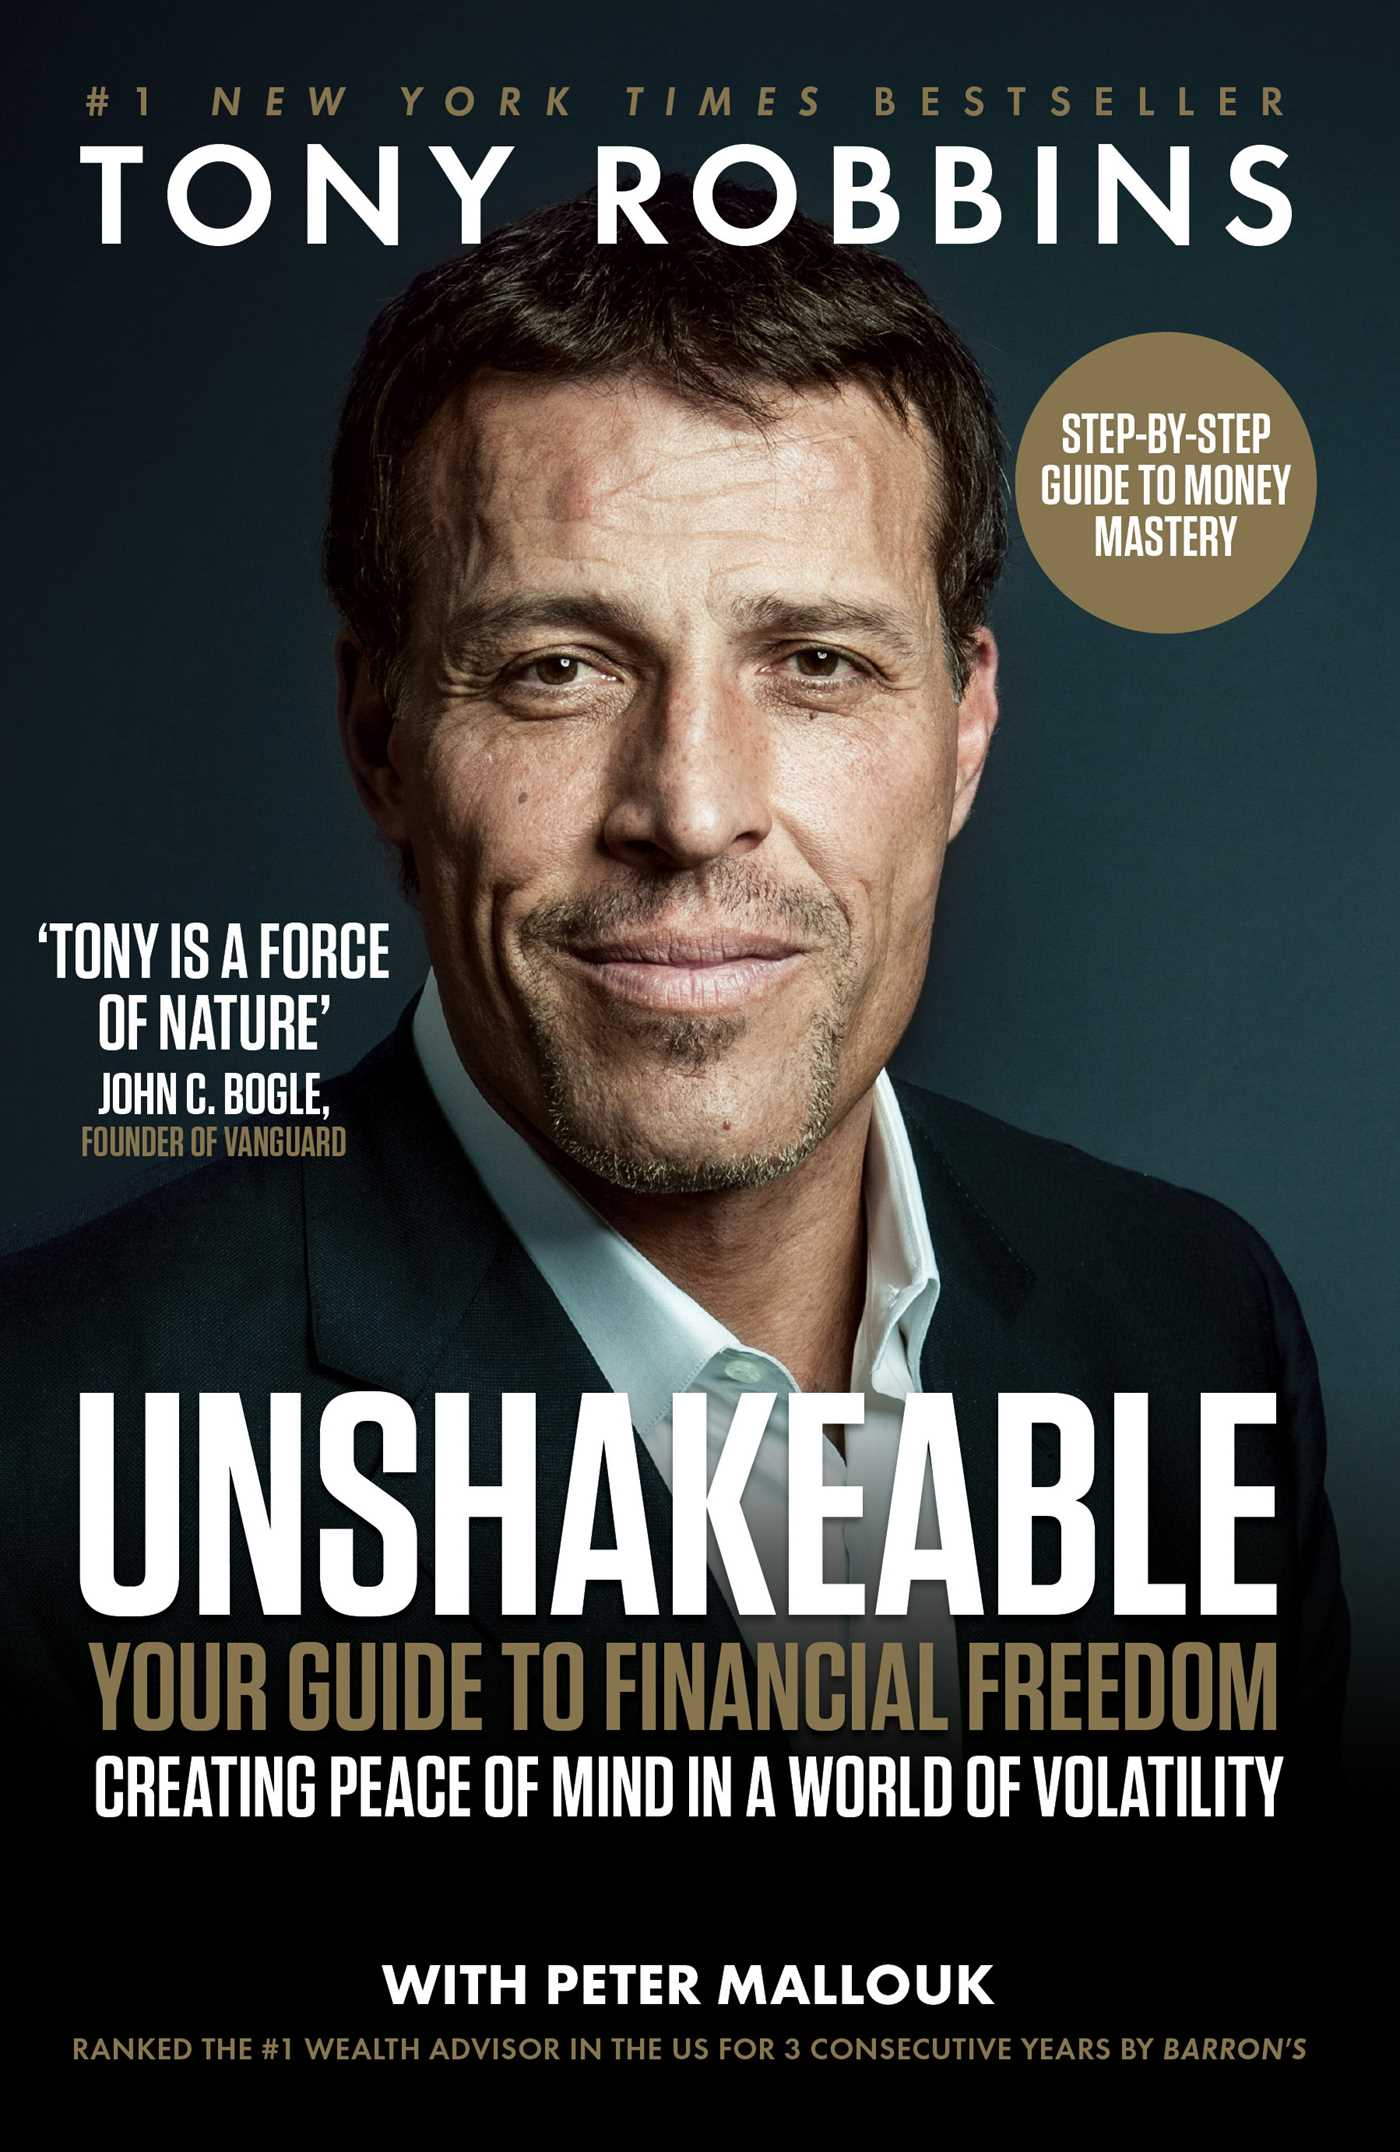 UnshakeableHow to Thrive in a New Era of Volatility by Tony Robbins, ISBN: 9781471164934